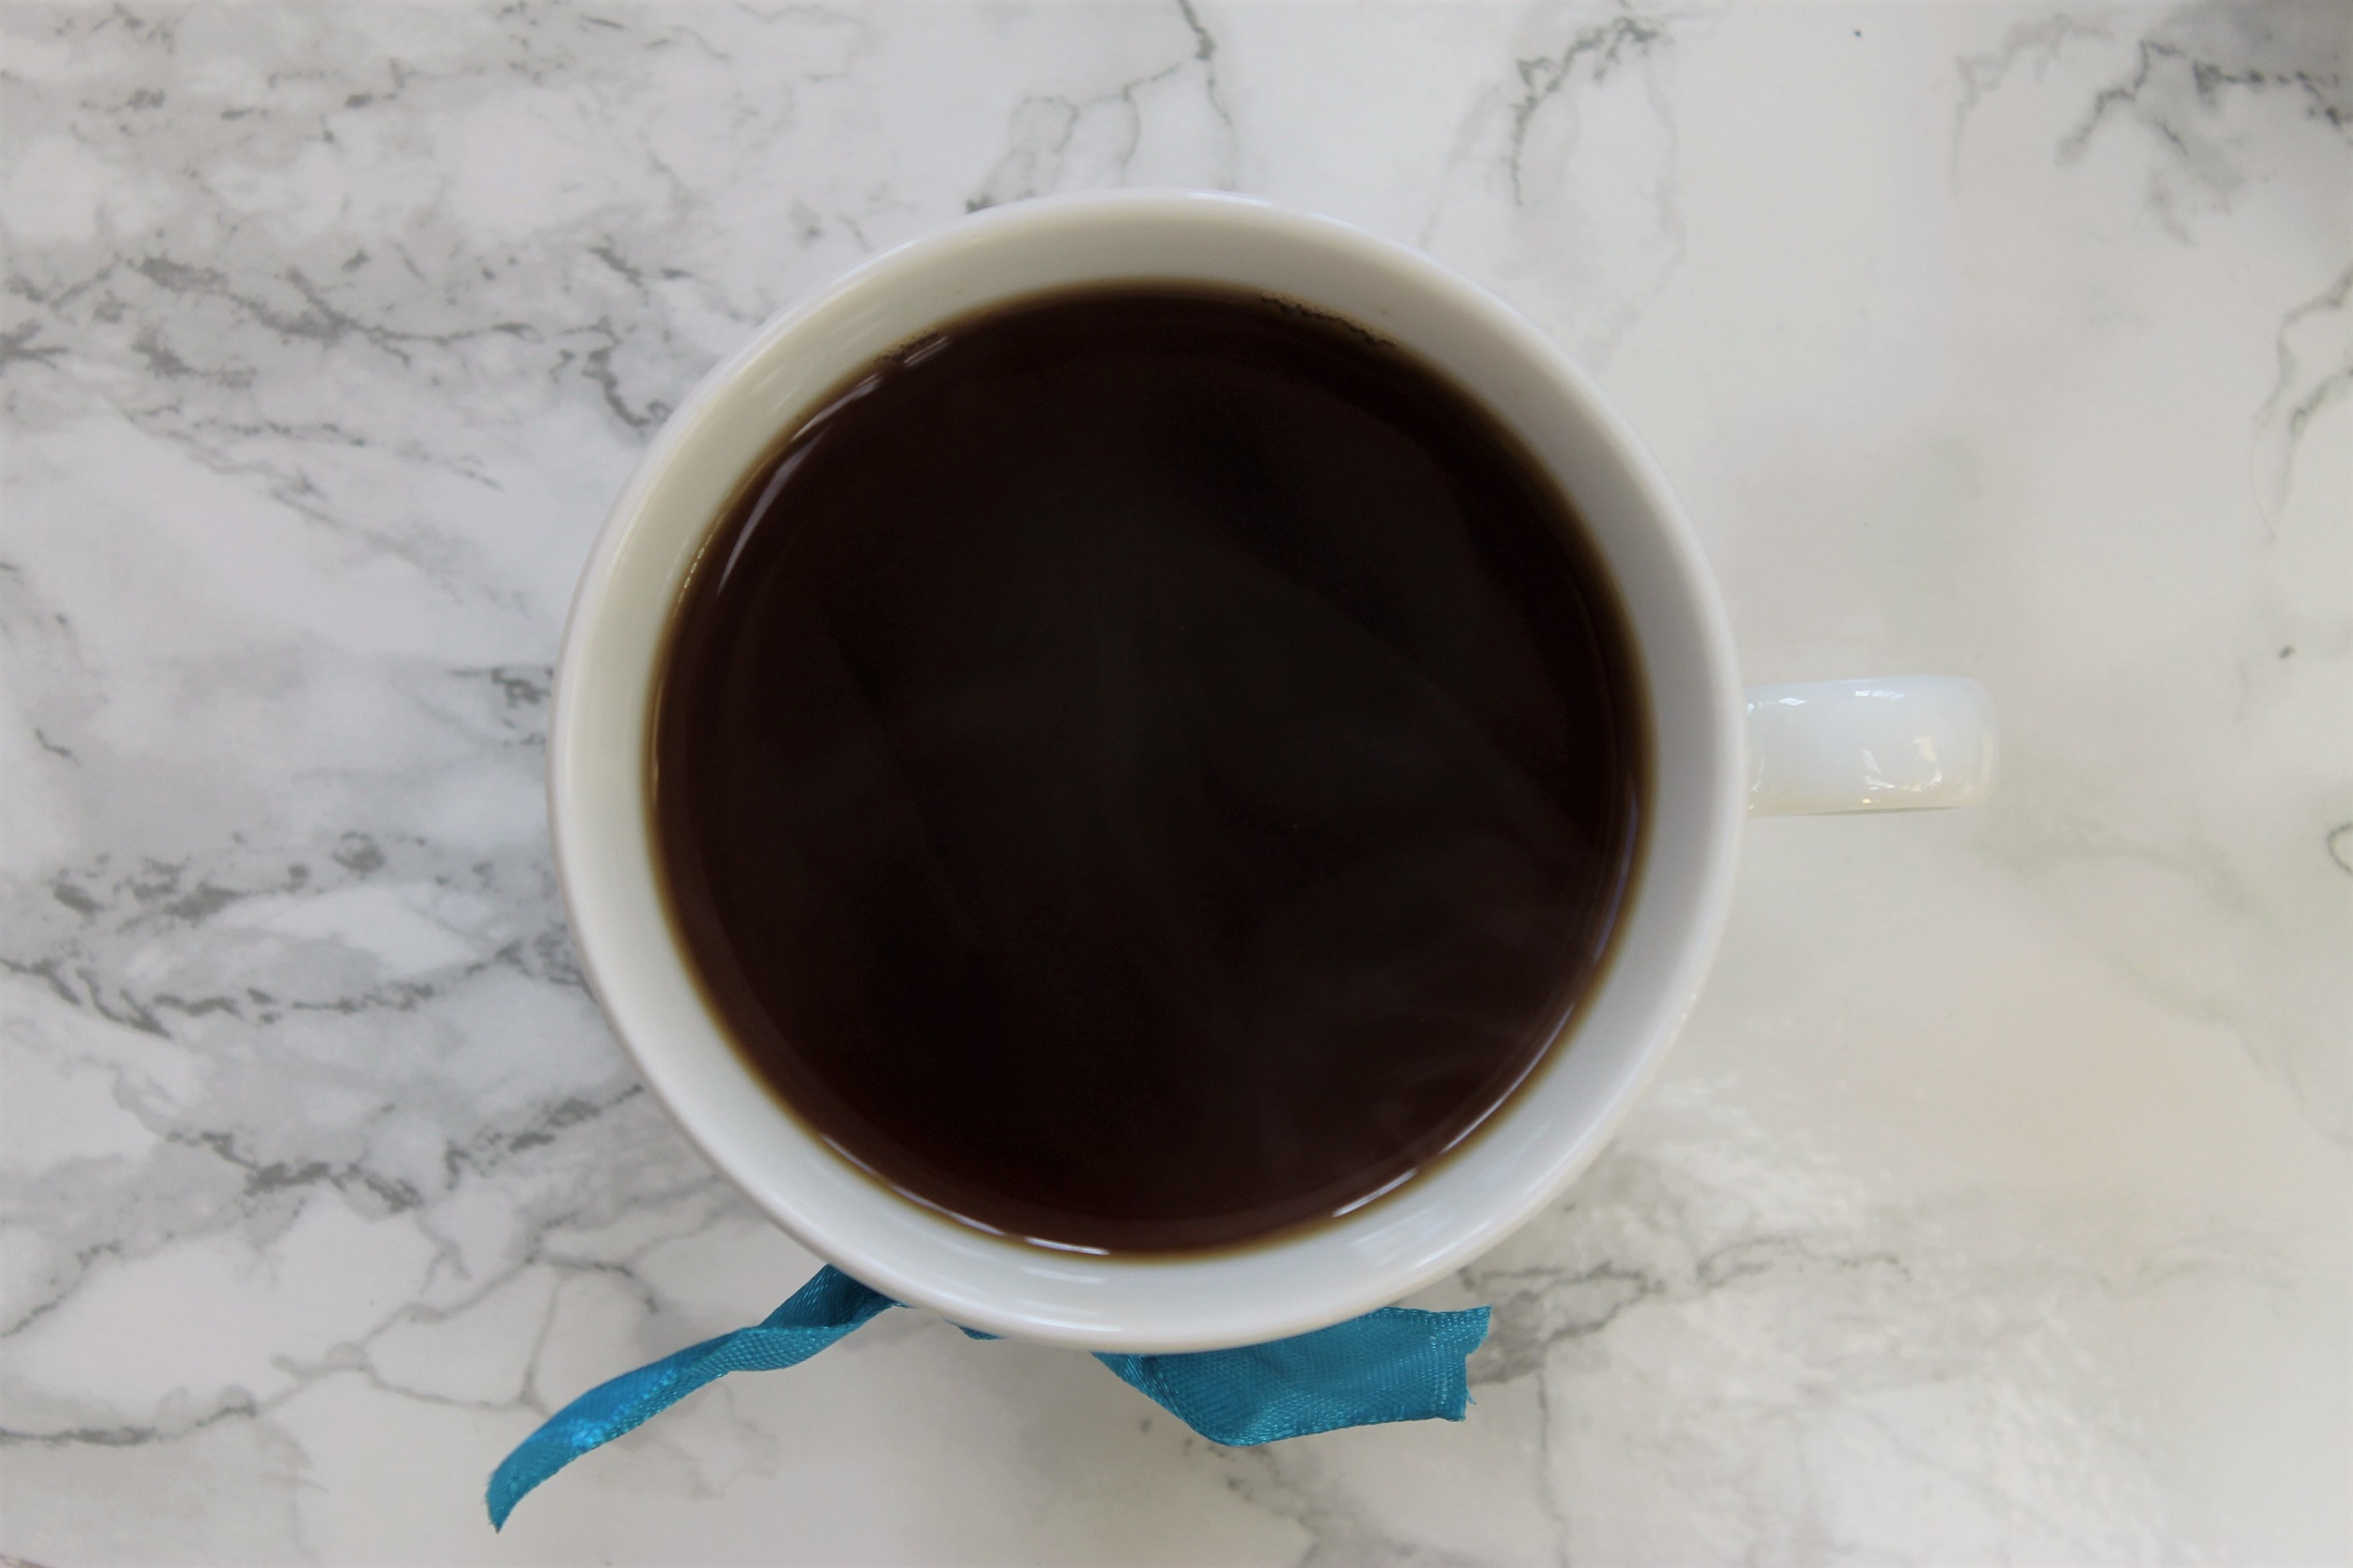 black tea in white tea cup with blue ribbon